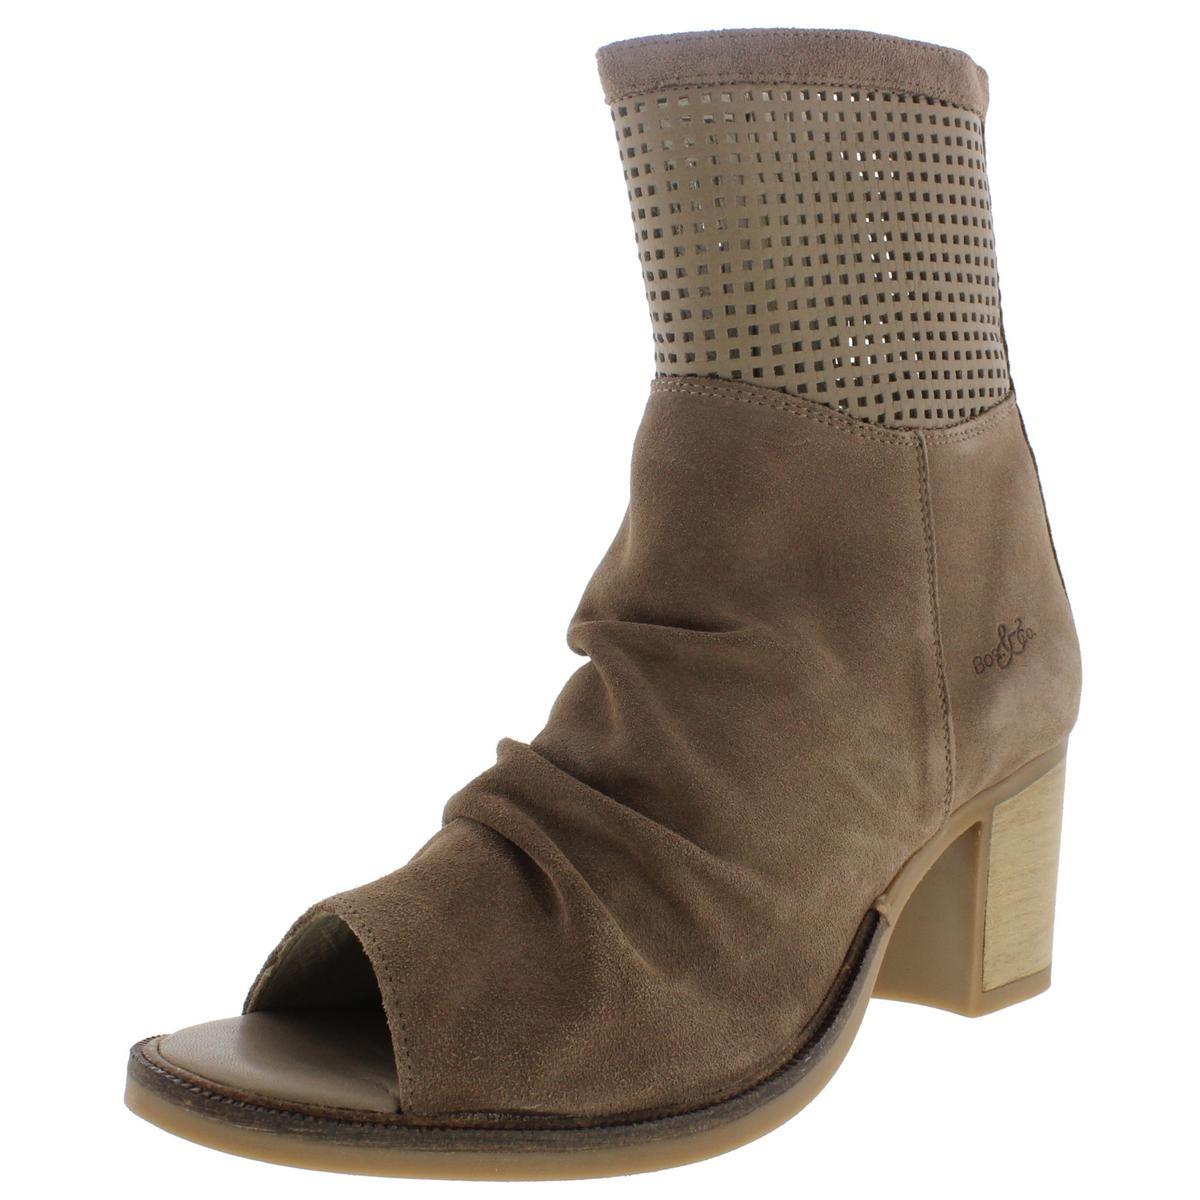 Bos. & Co. Womens Celine Suede Peep Toe Ankle Boots